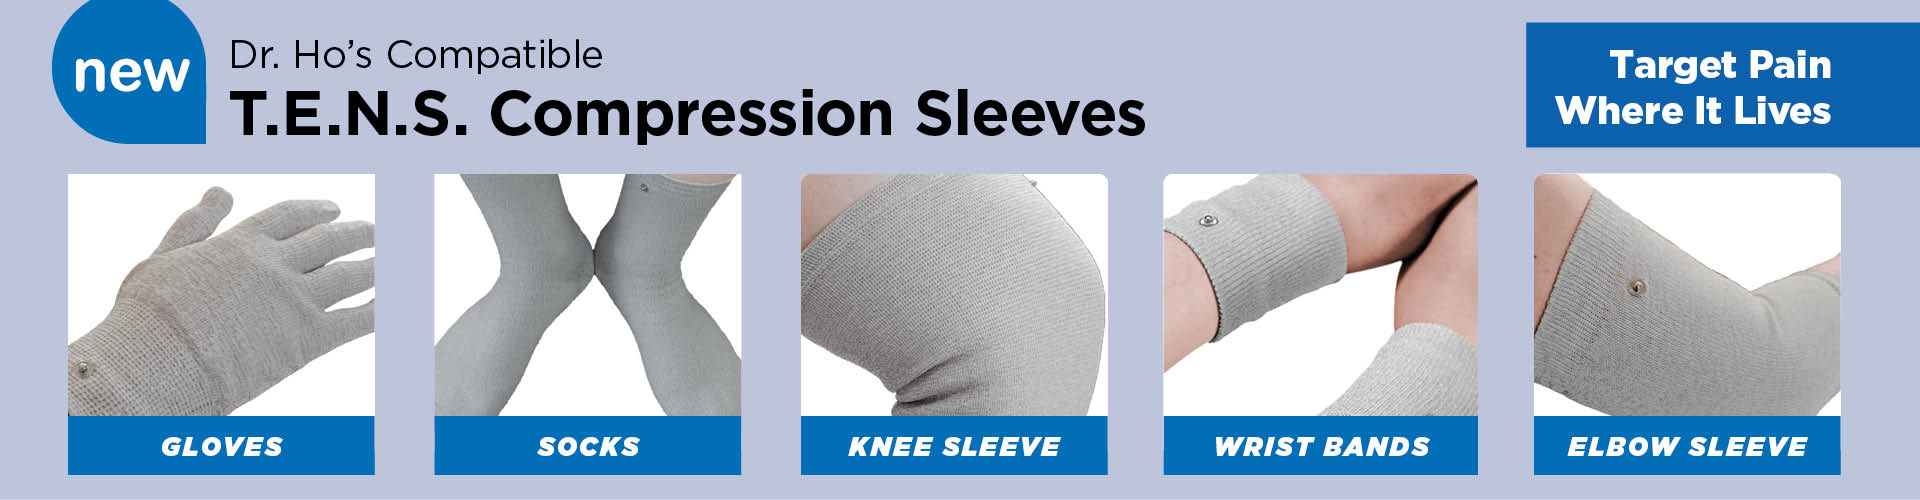 Conductive Sleeves